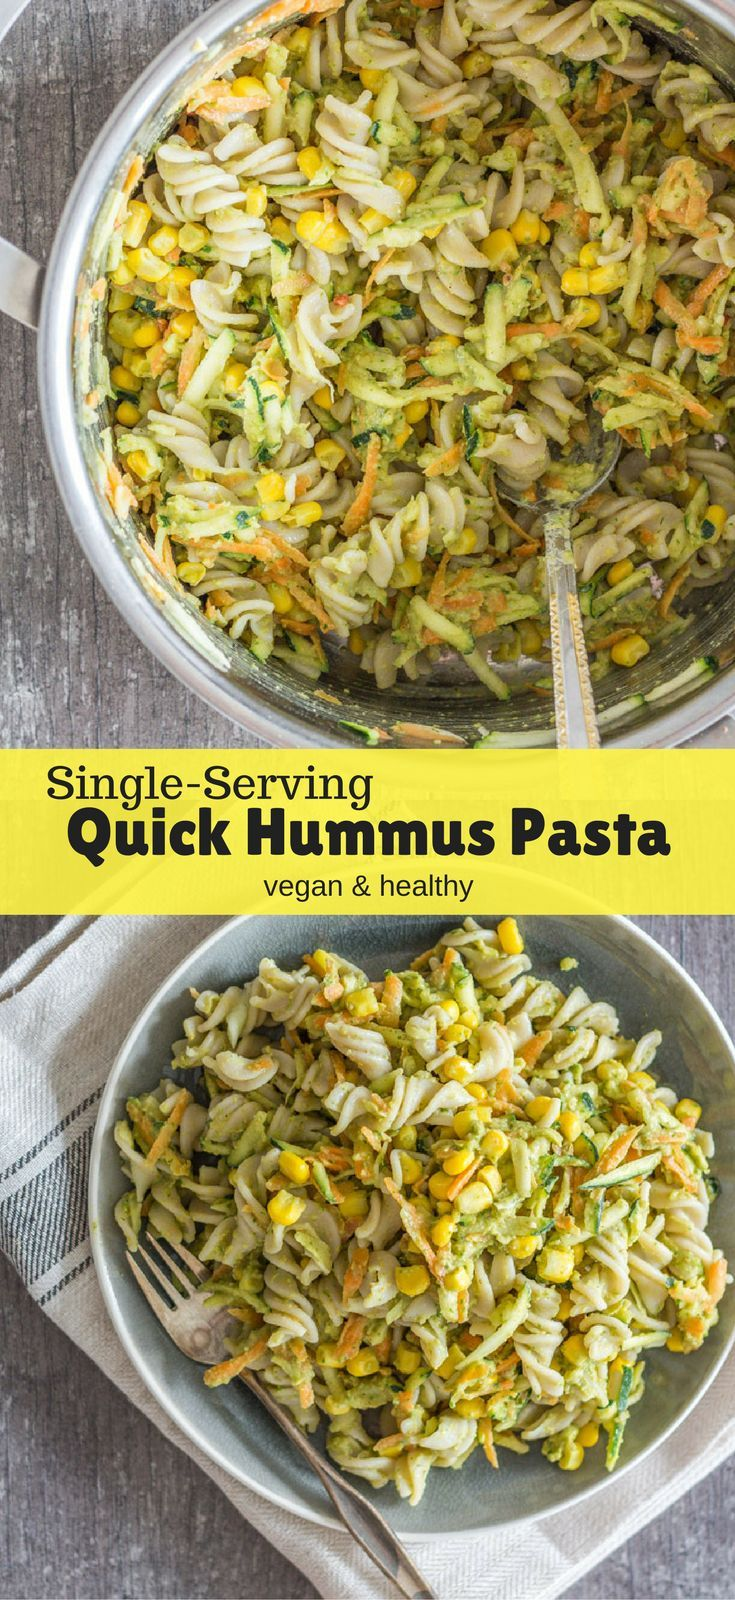 This Single-Serving Quick Hummus Pasta is quick and easy, filling, healthy, creamy, and very delicious. A perfect vegan dinner for any busy weeknights. Healthy vegan recipes | healthy | vegan | dinner | lunch | vegan dinner recipes | recipes | vegetarian | The Mostly Healthy